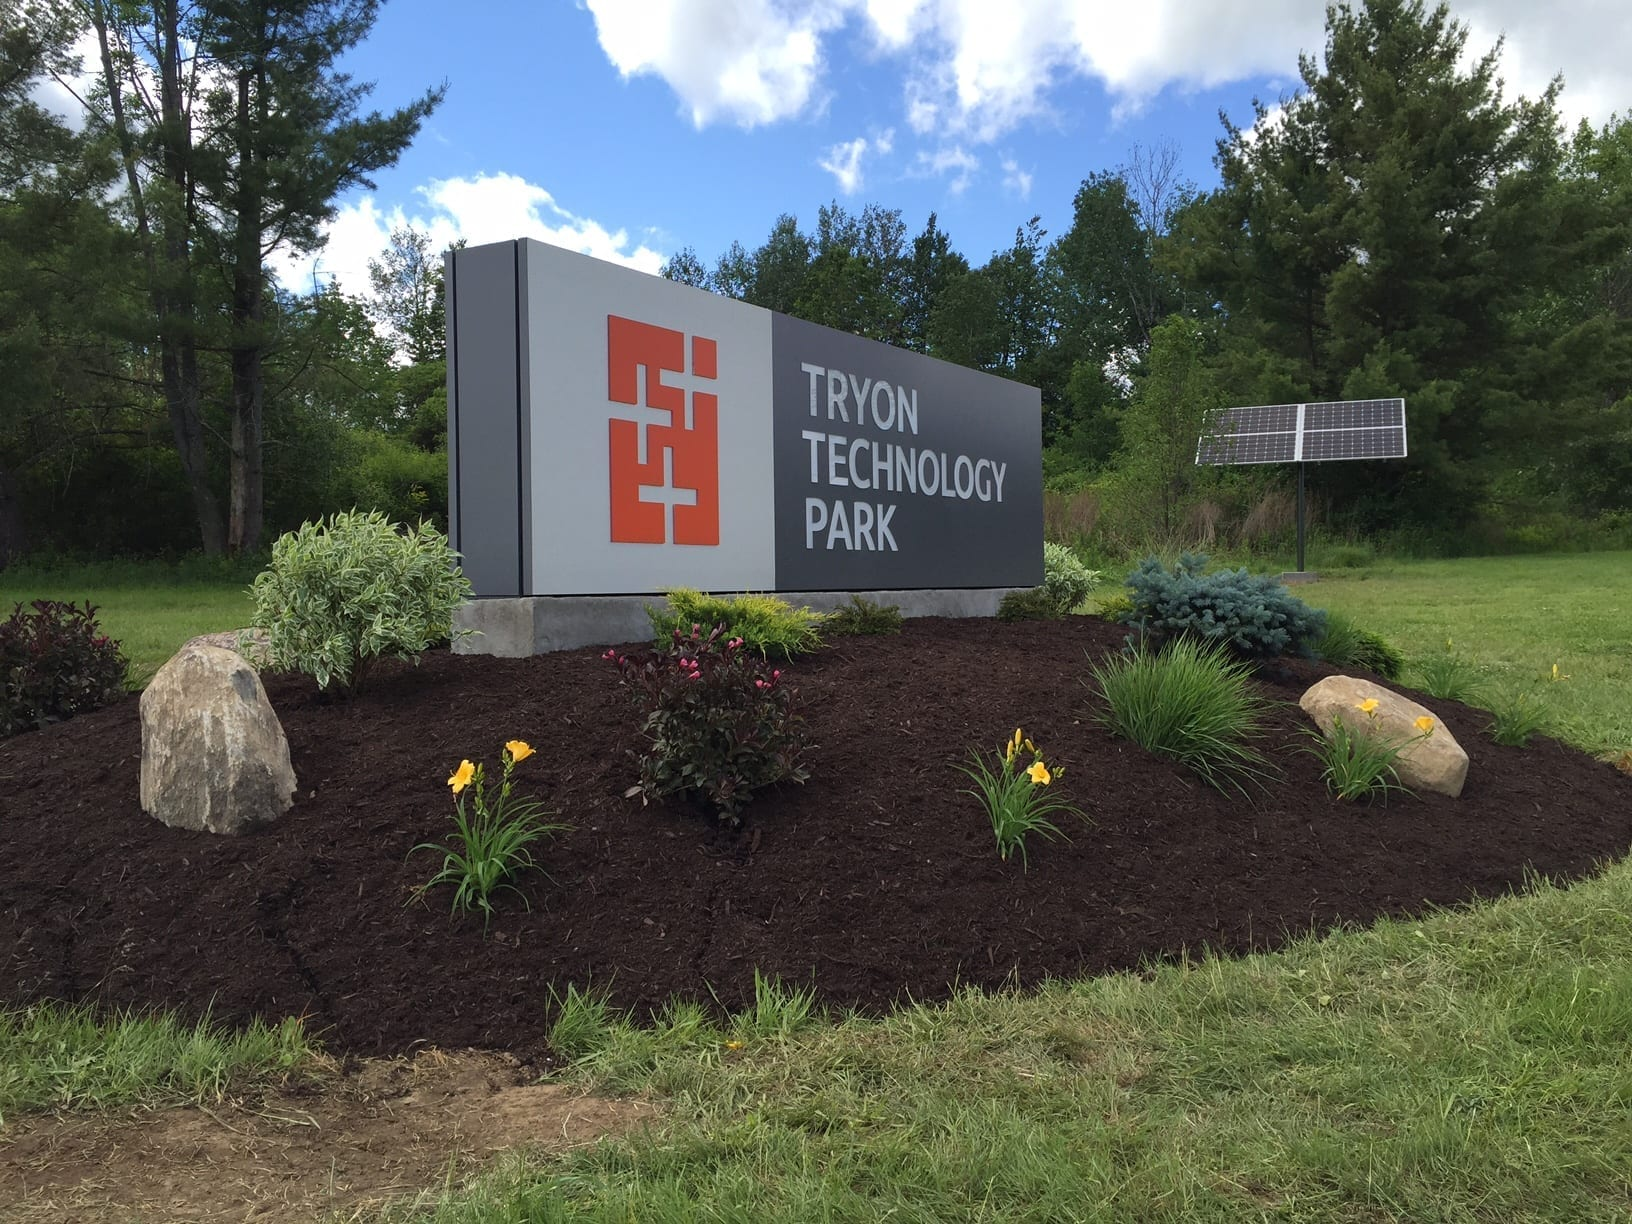 Tryon Technology Park